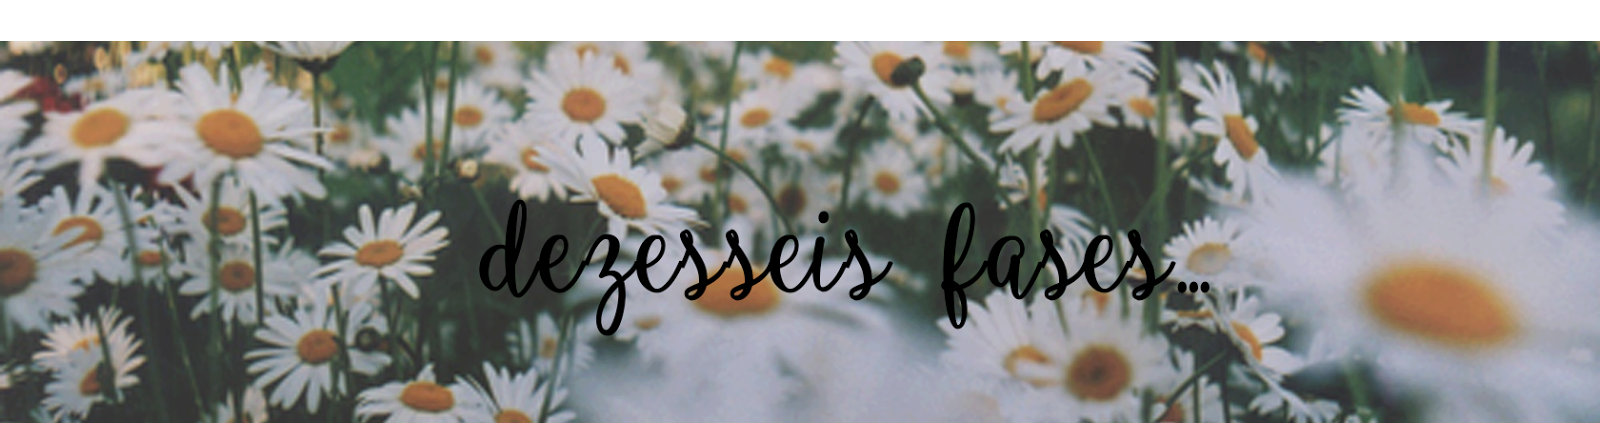 Dezesseis Fases